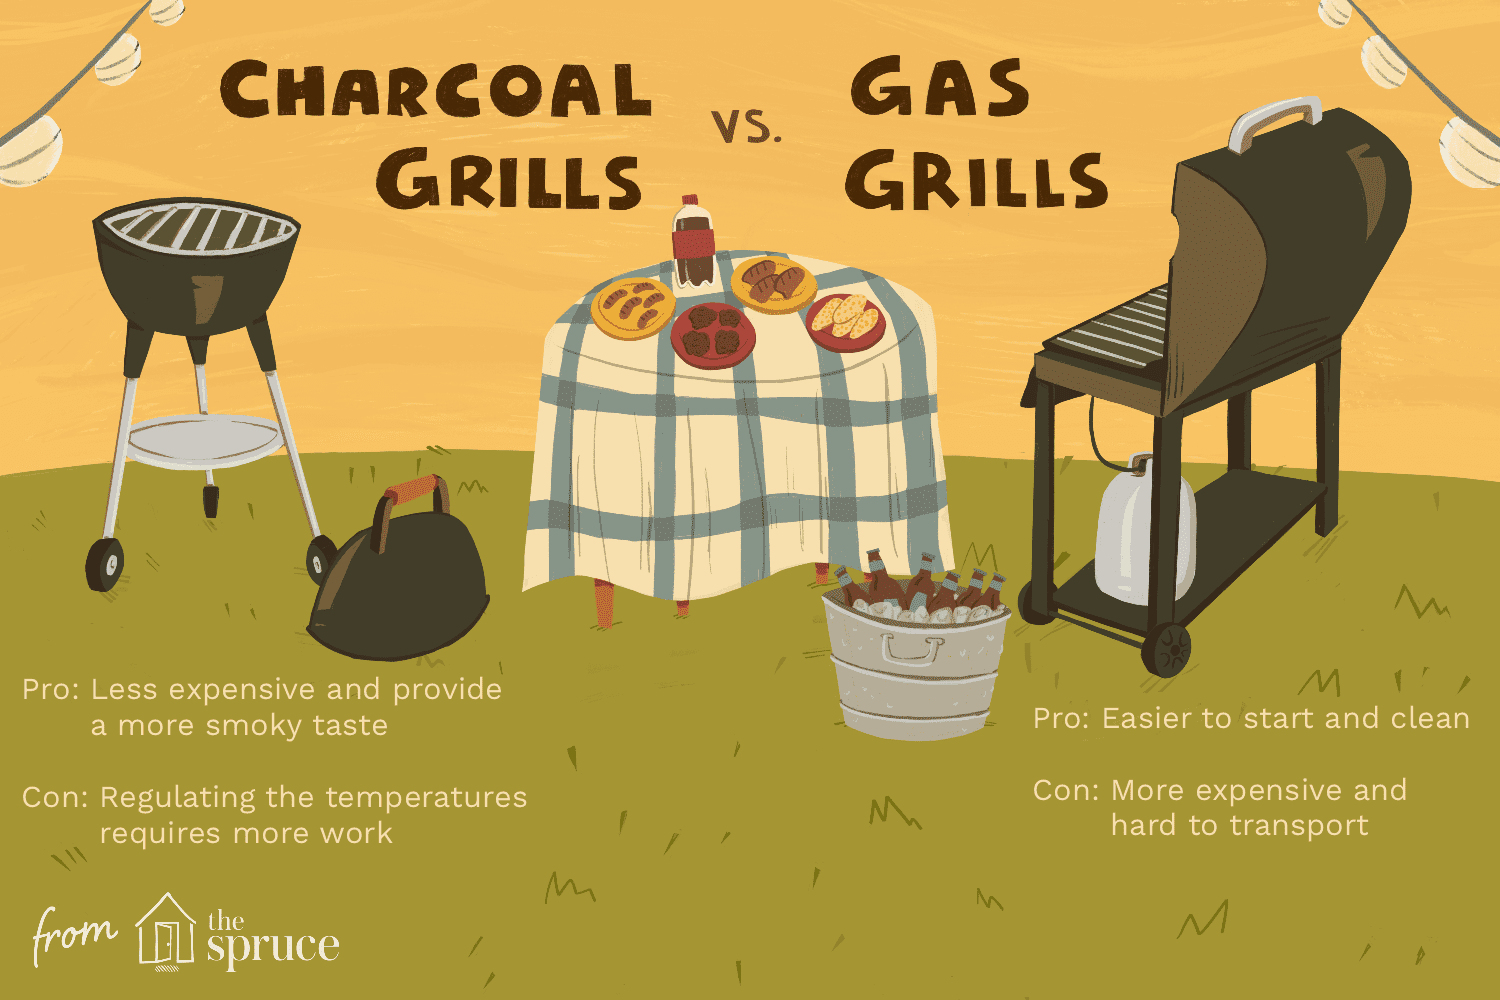 pros and cons of charcoal grills versus gas grills